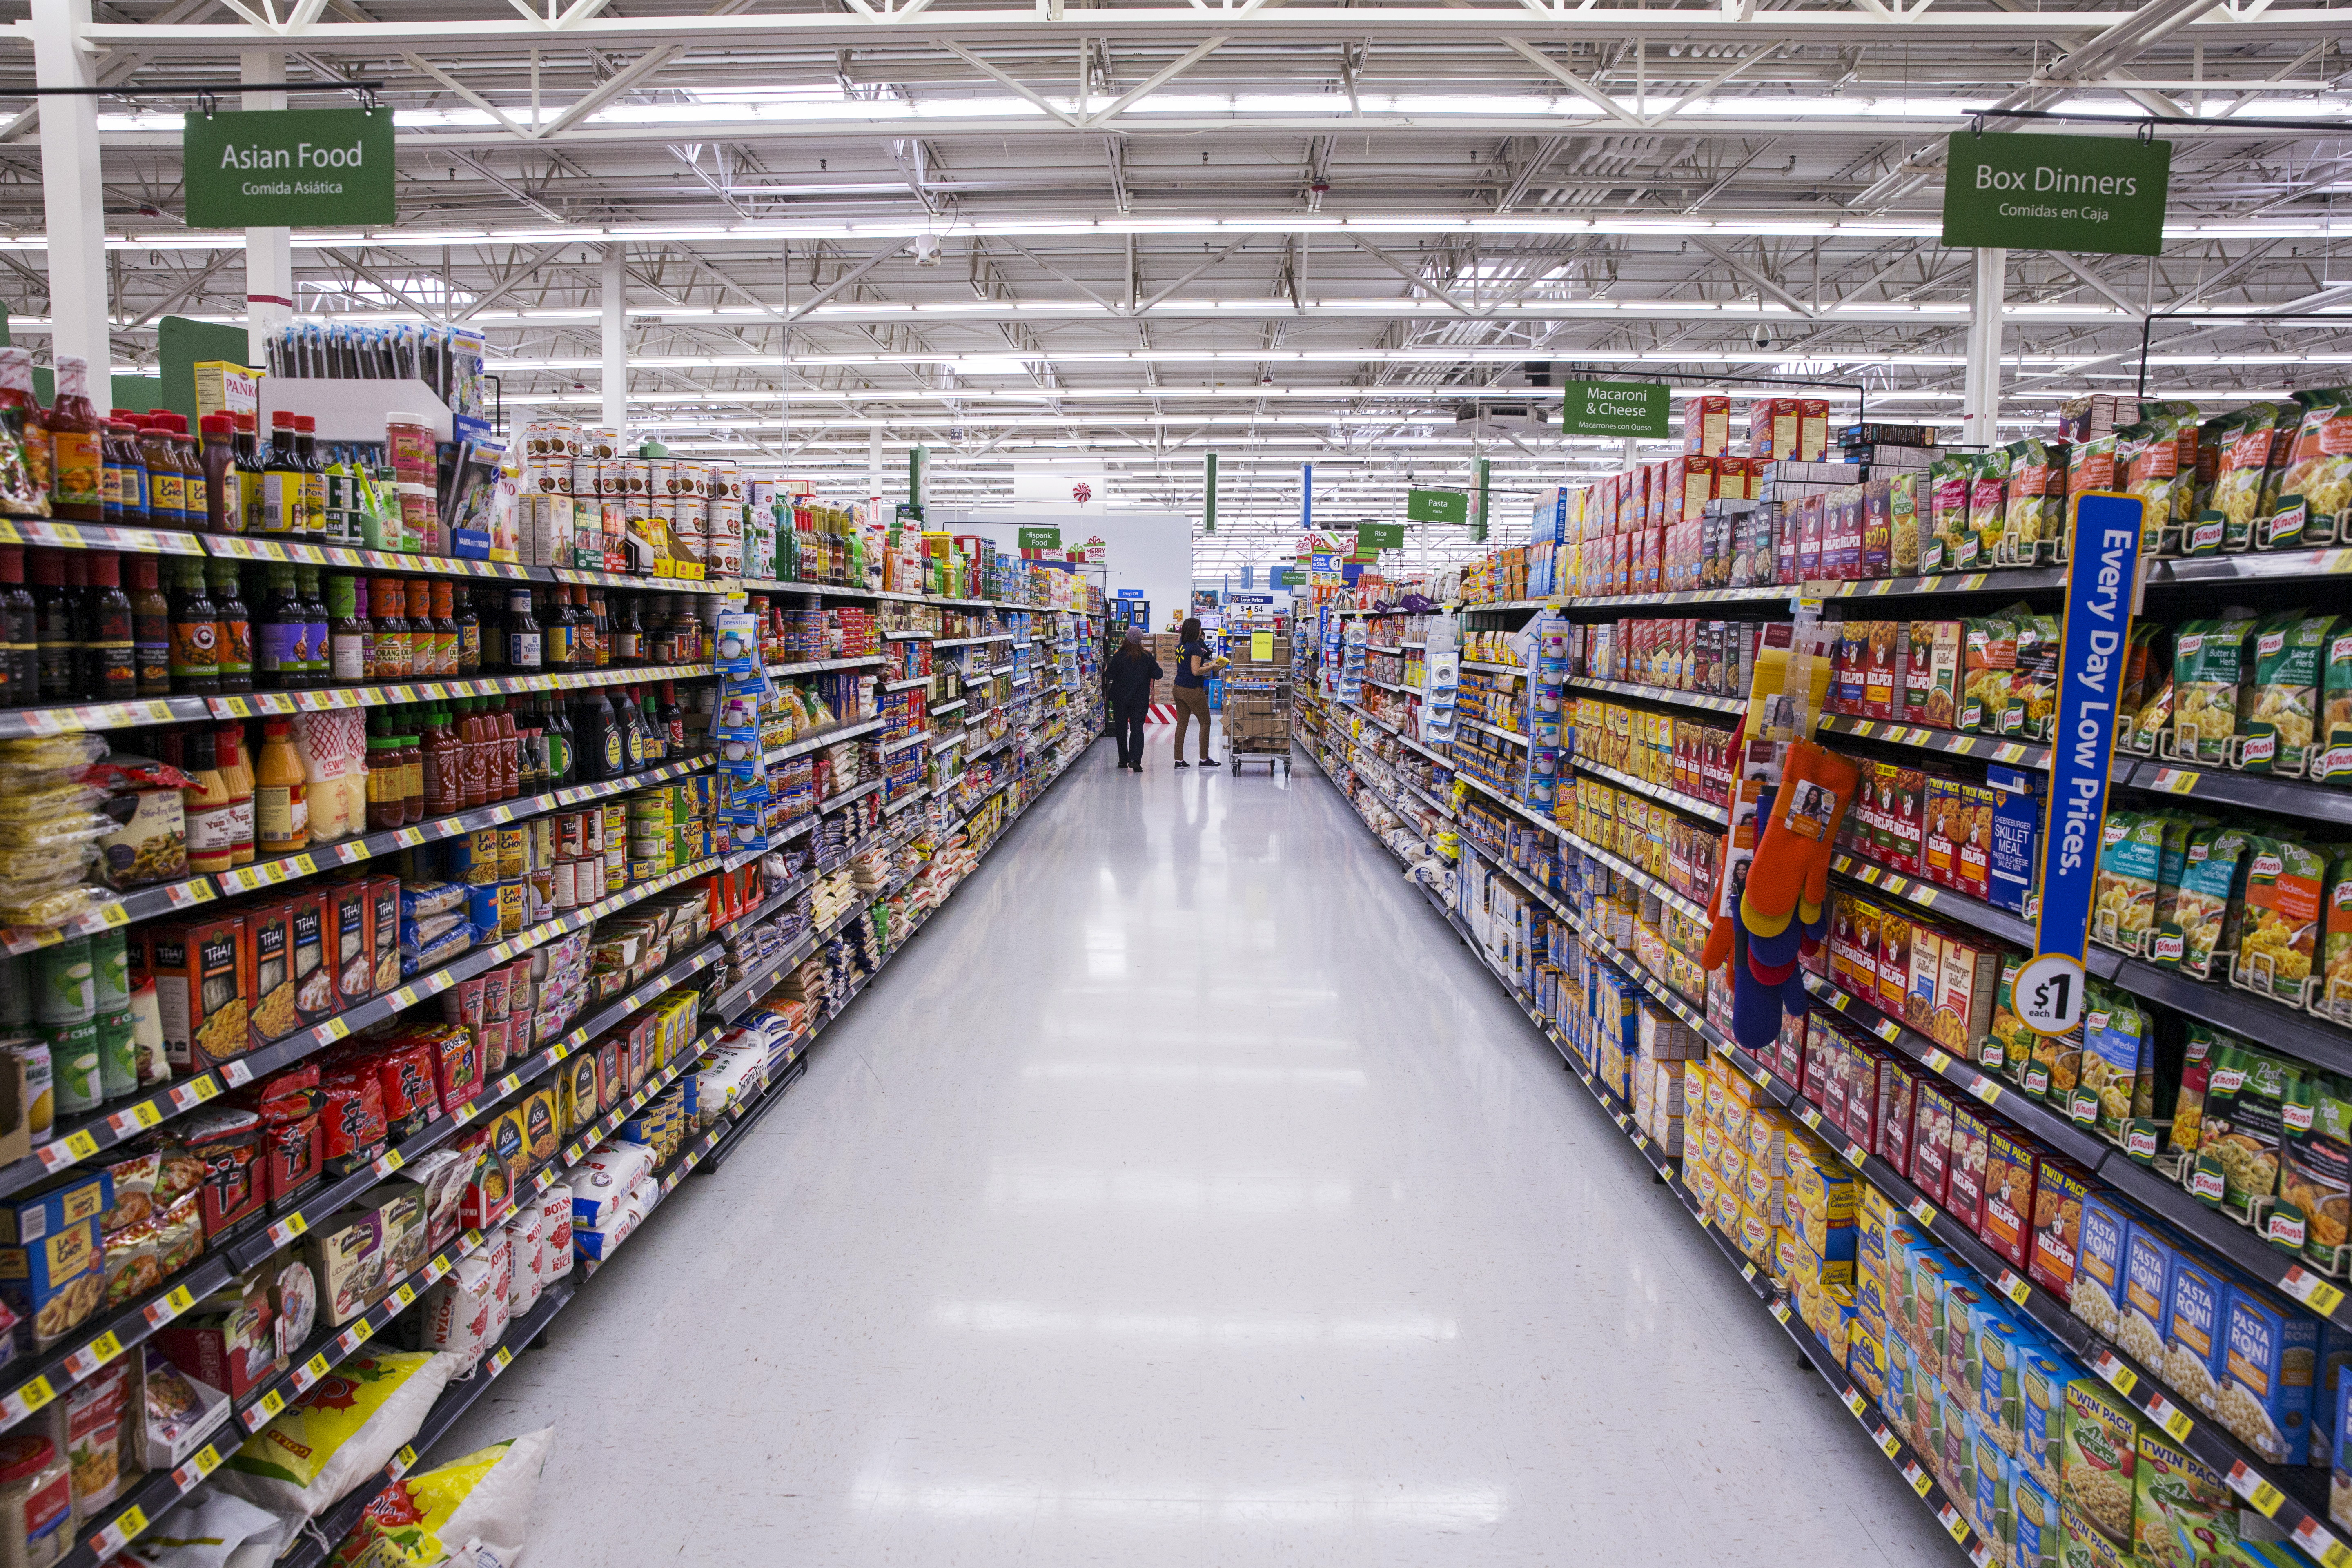 Non-perishable food is displayed at a Walmart store in Secaucus, New Jersey